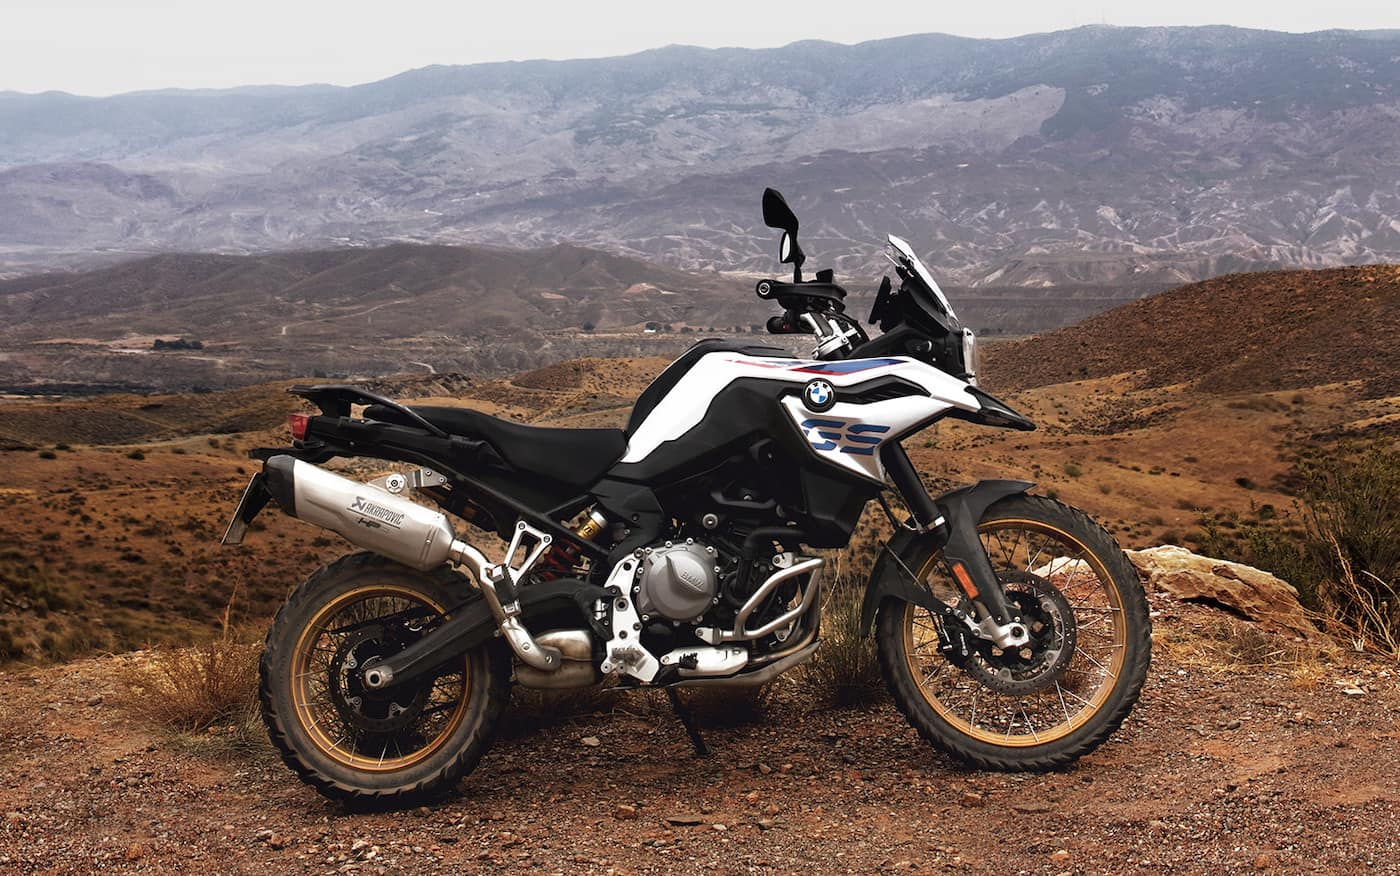 BMW F850GS in the wild on dirt with mountains